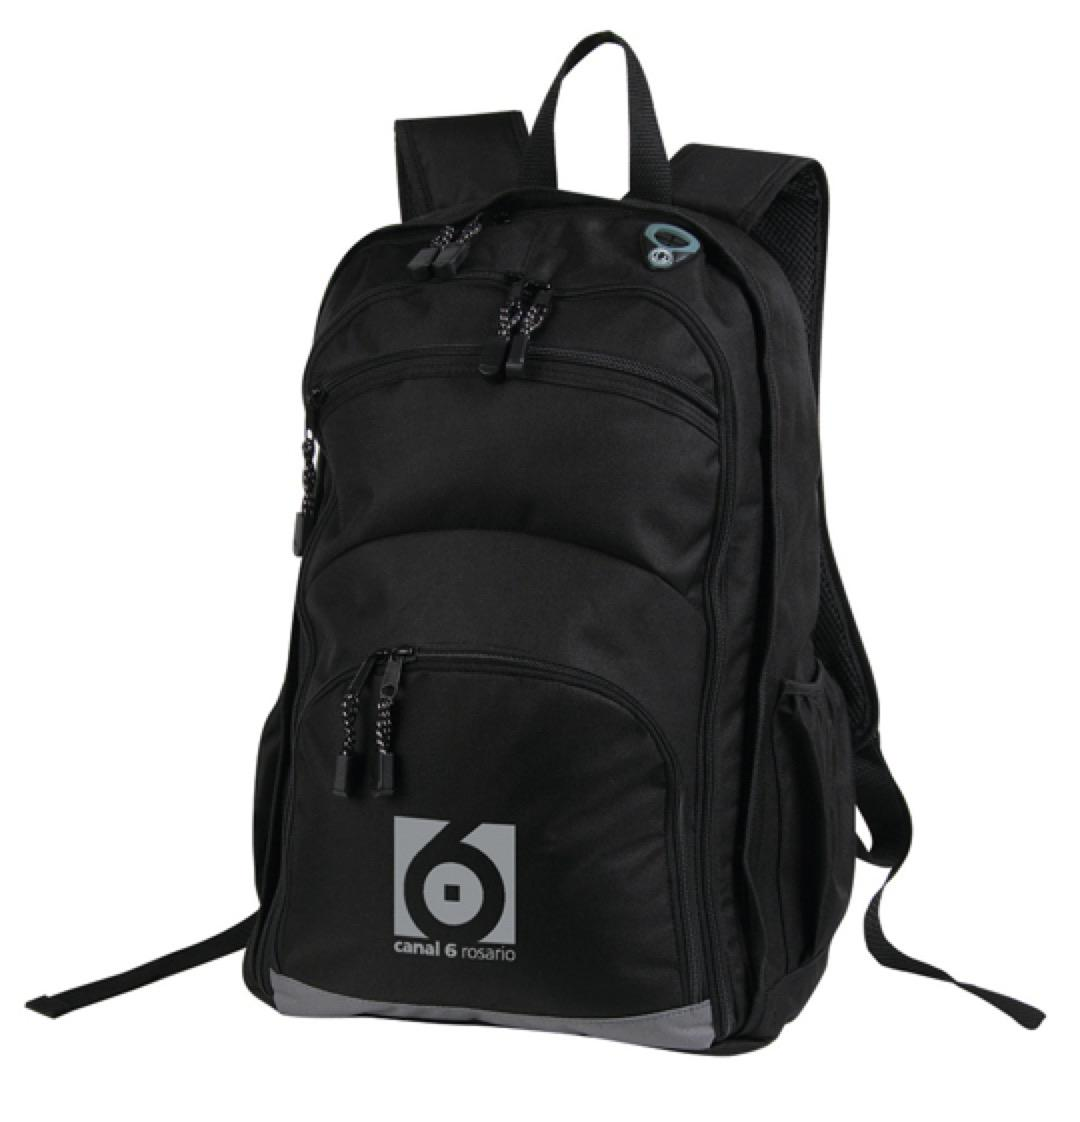 Transit Backpack, From 20 -